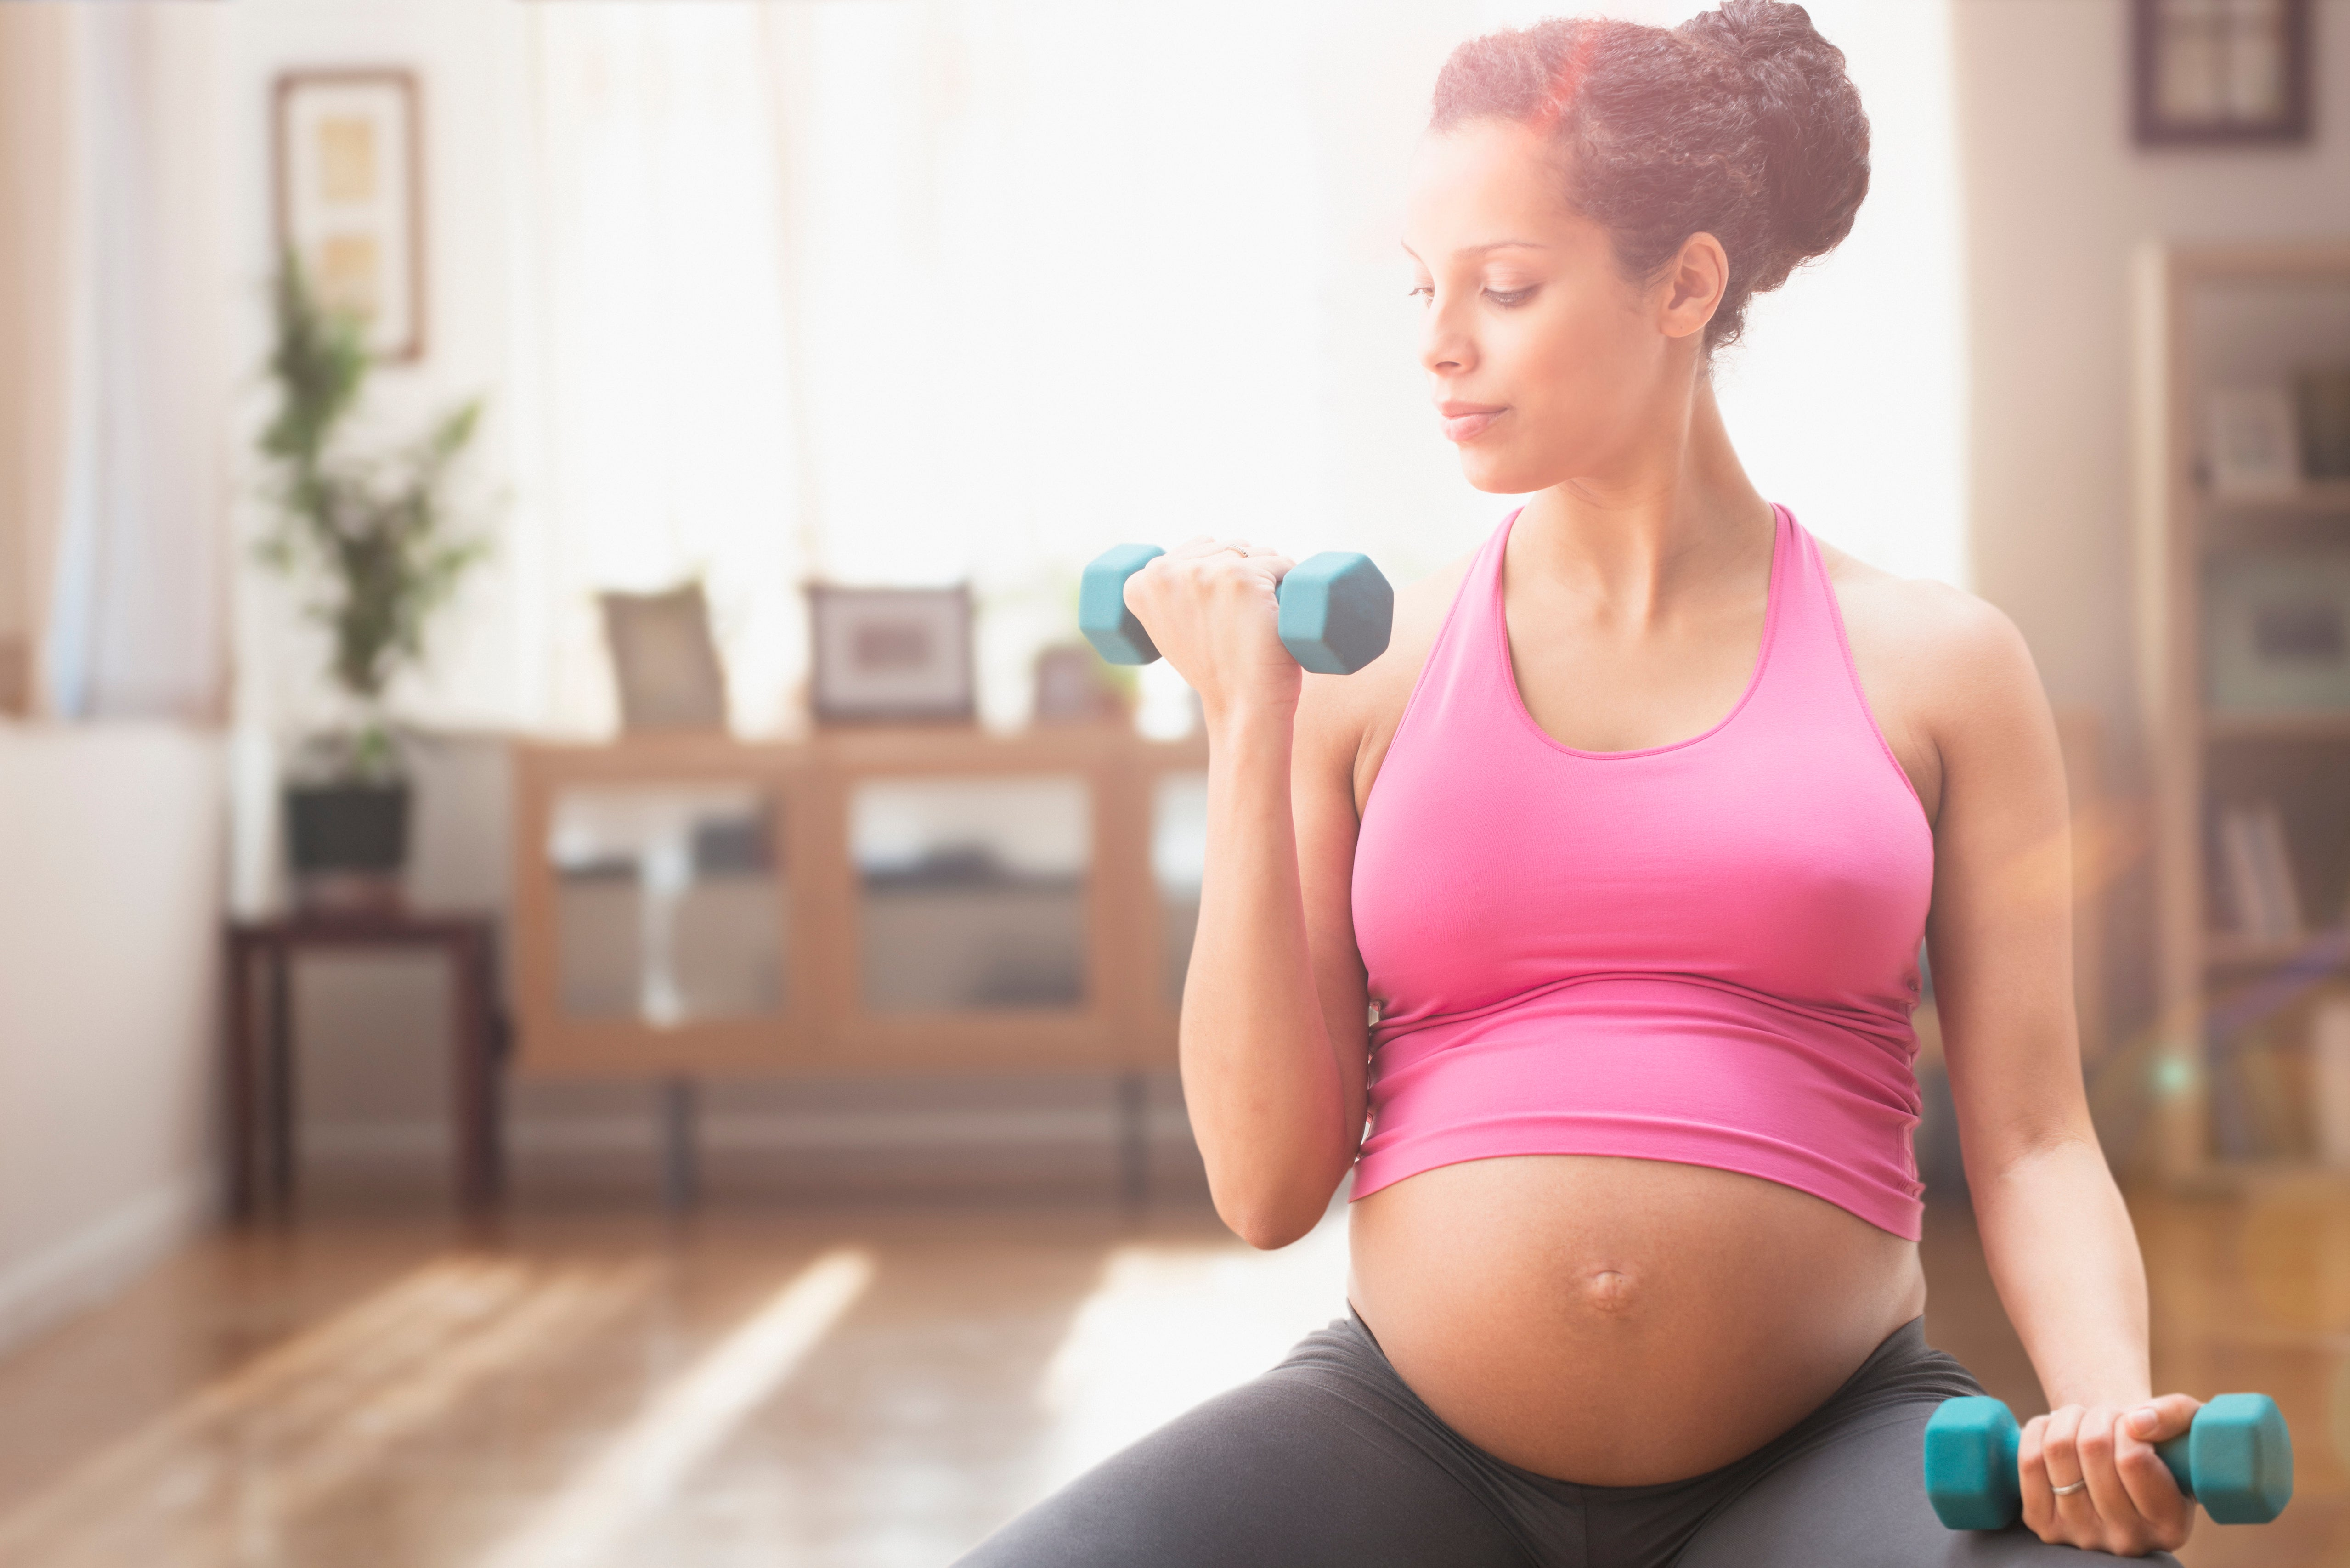 How To Develop The Right Pregnancy Mindset For Healthy Results